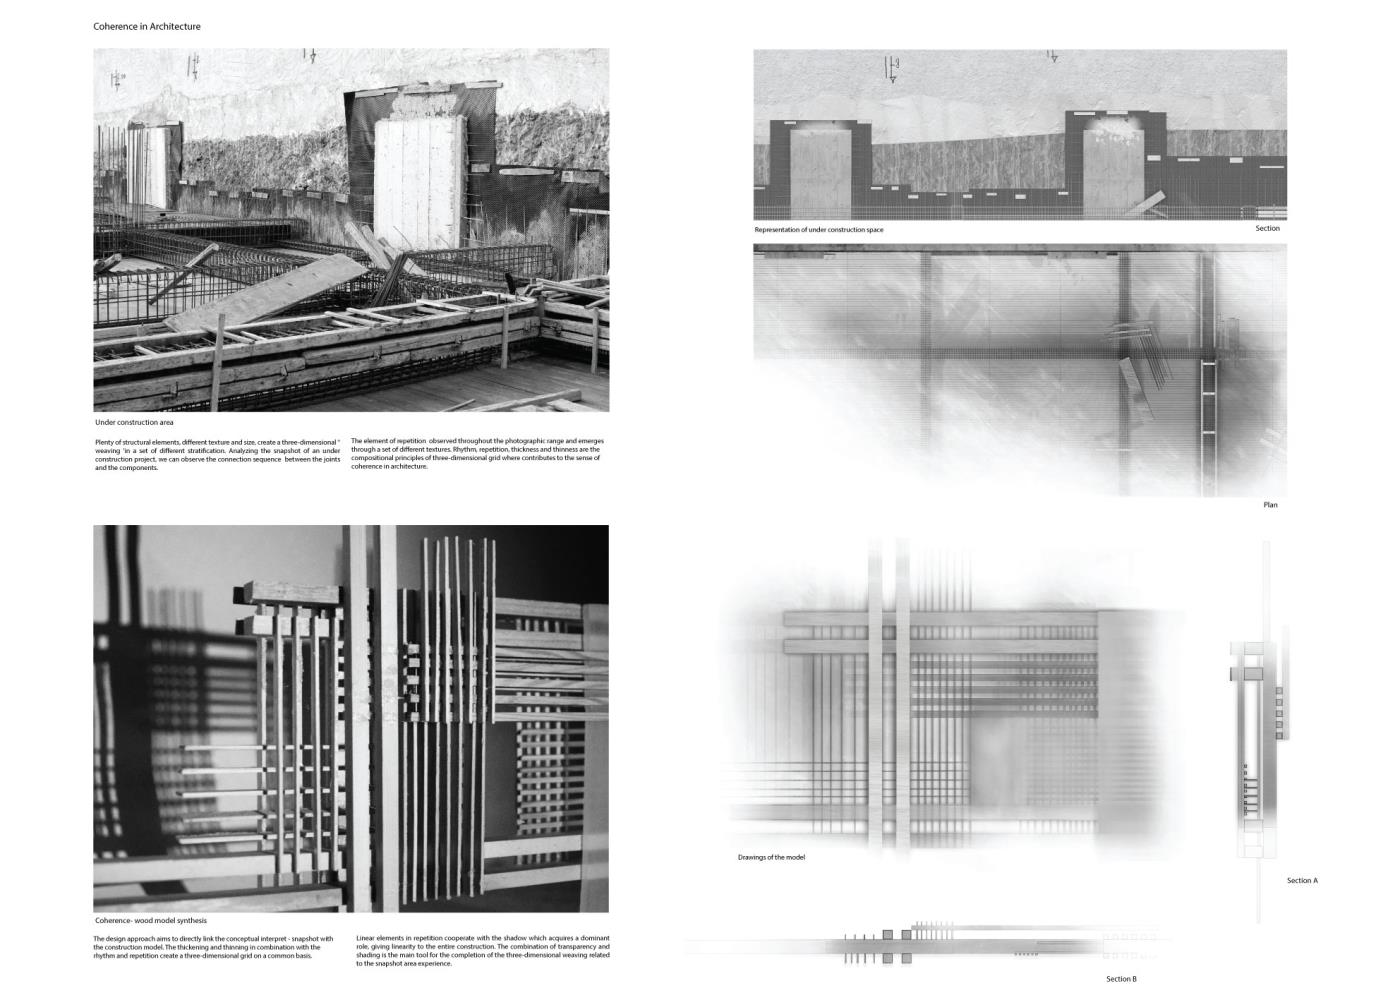 Coherence in Architecture